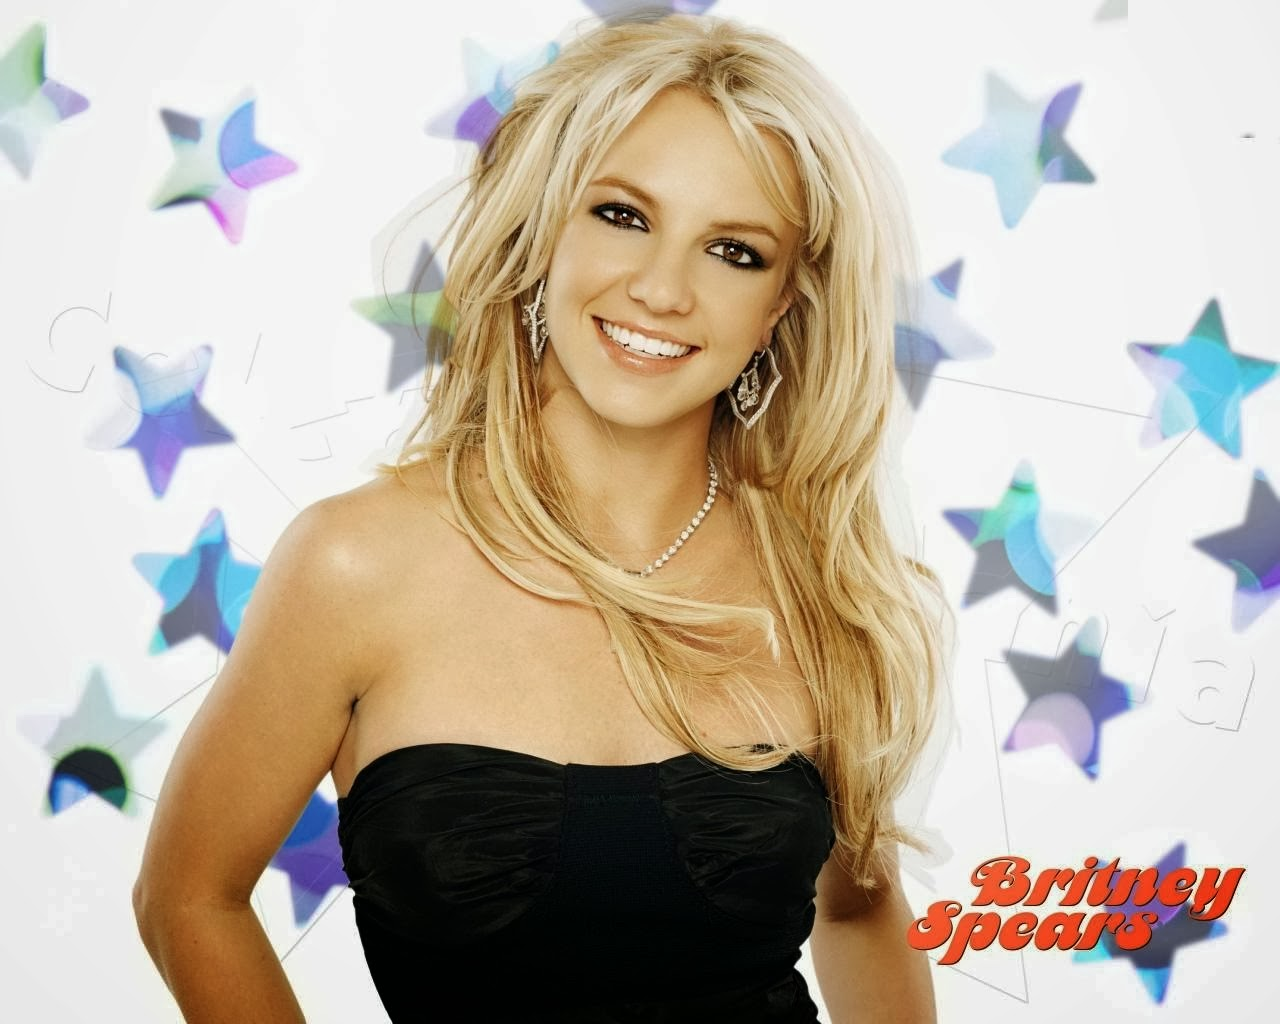 Britney+Spears+Hd+Wallpapers+Free+Download018